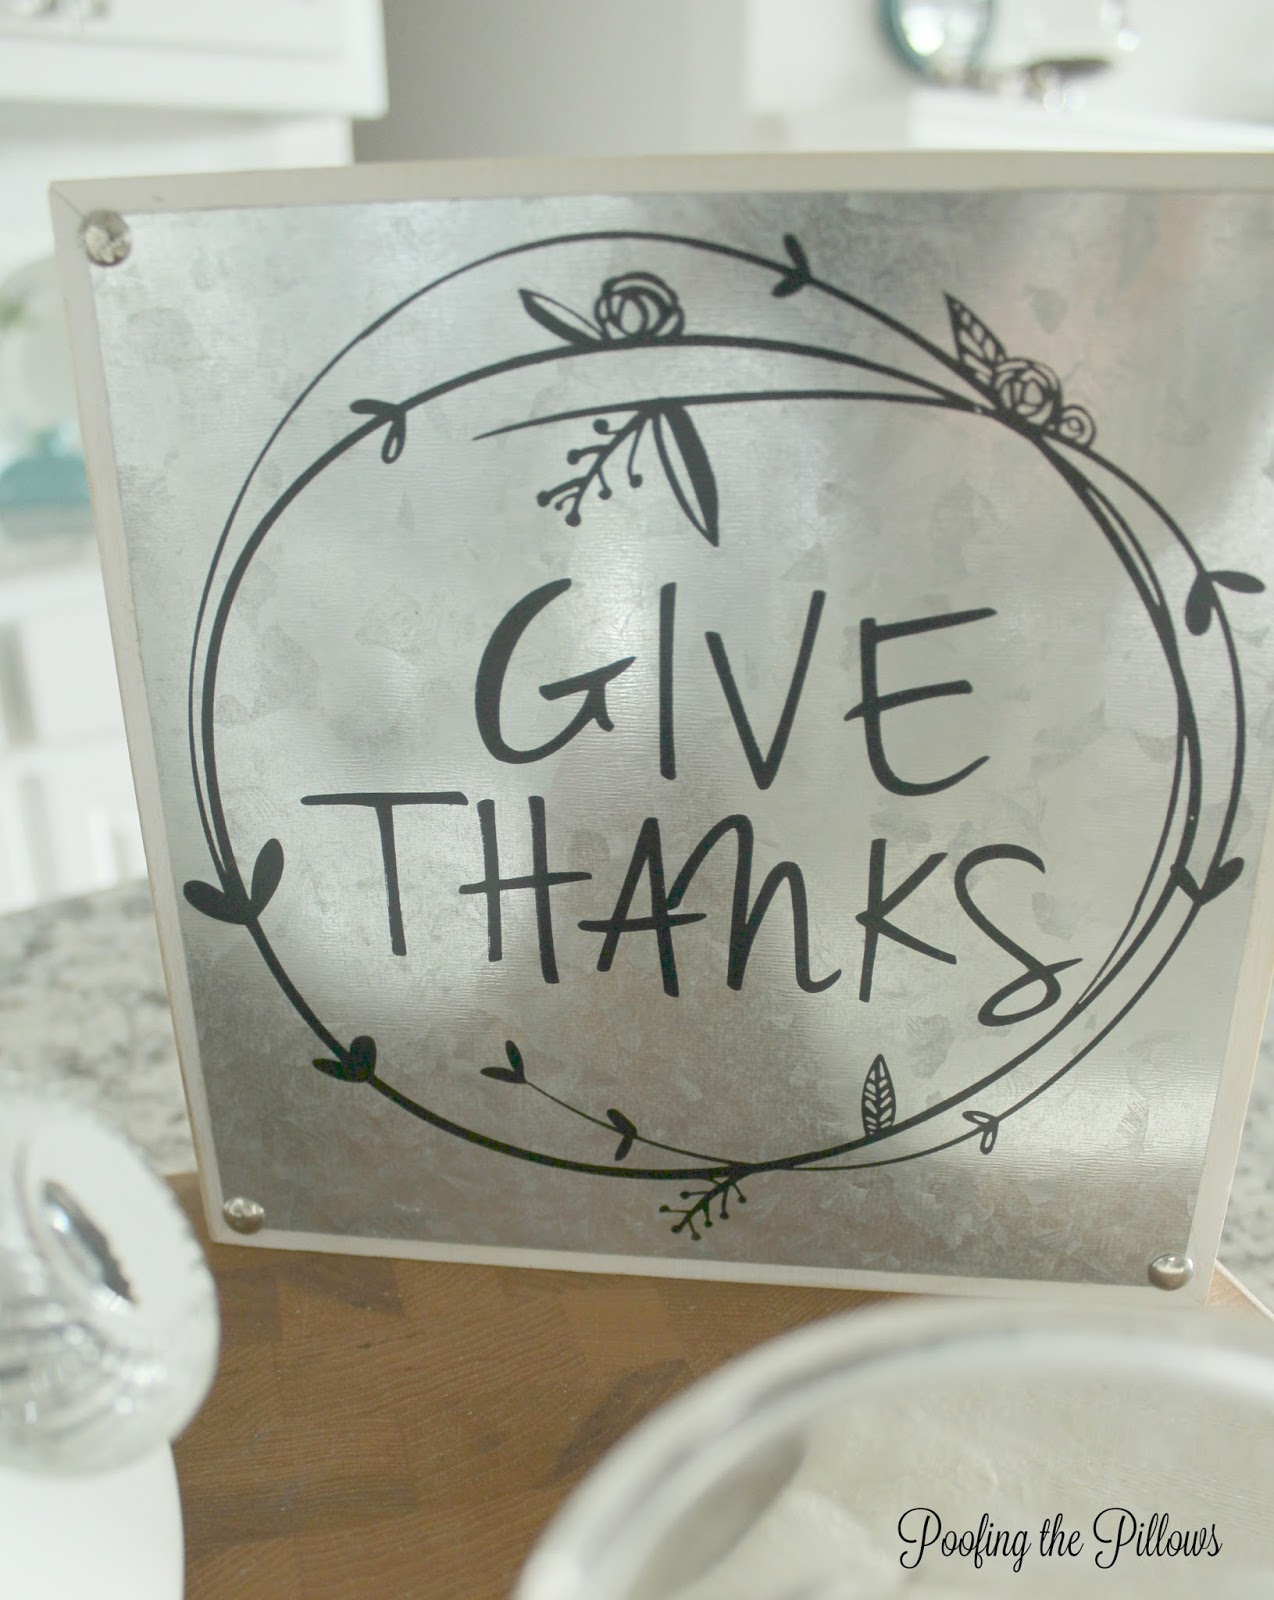 Give Thanks is the message shared on this kitchen vignette. Part of Ten on the 10th.